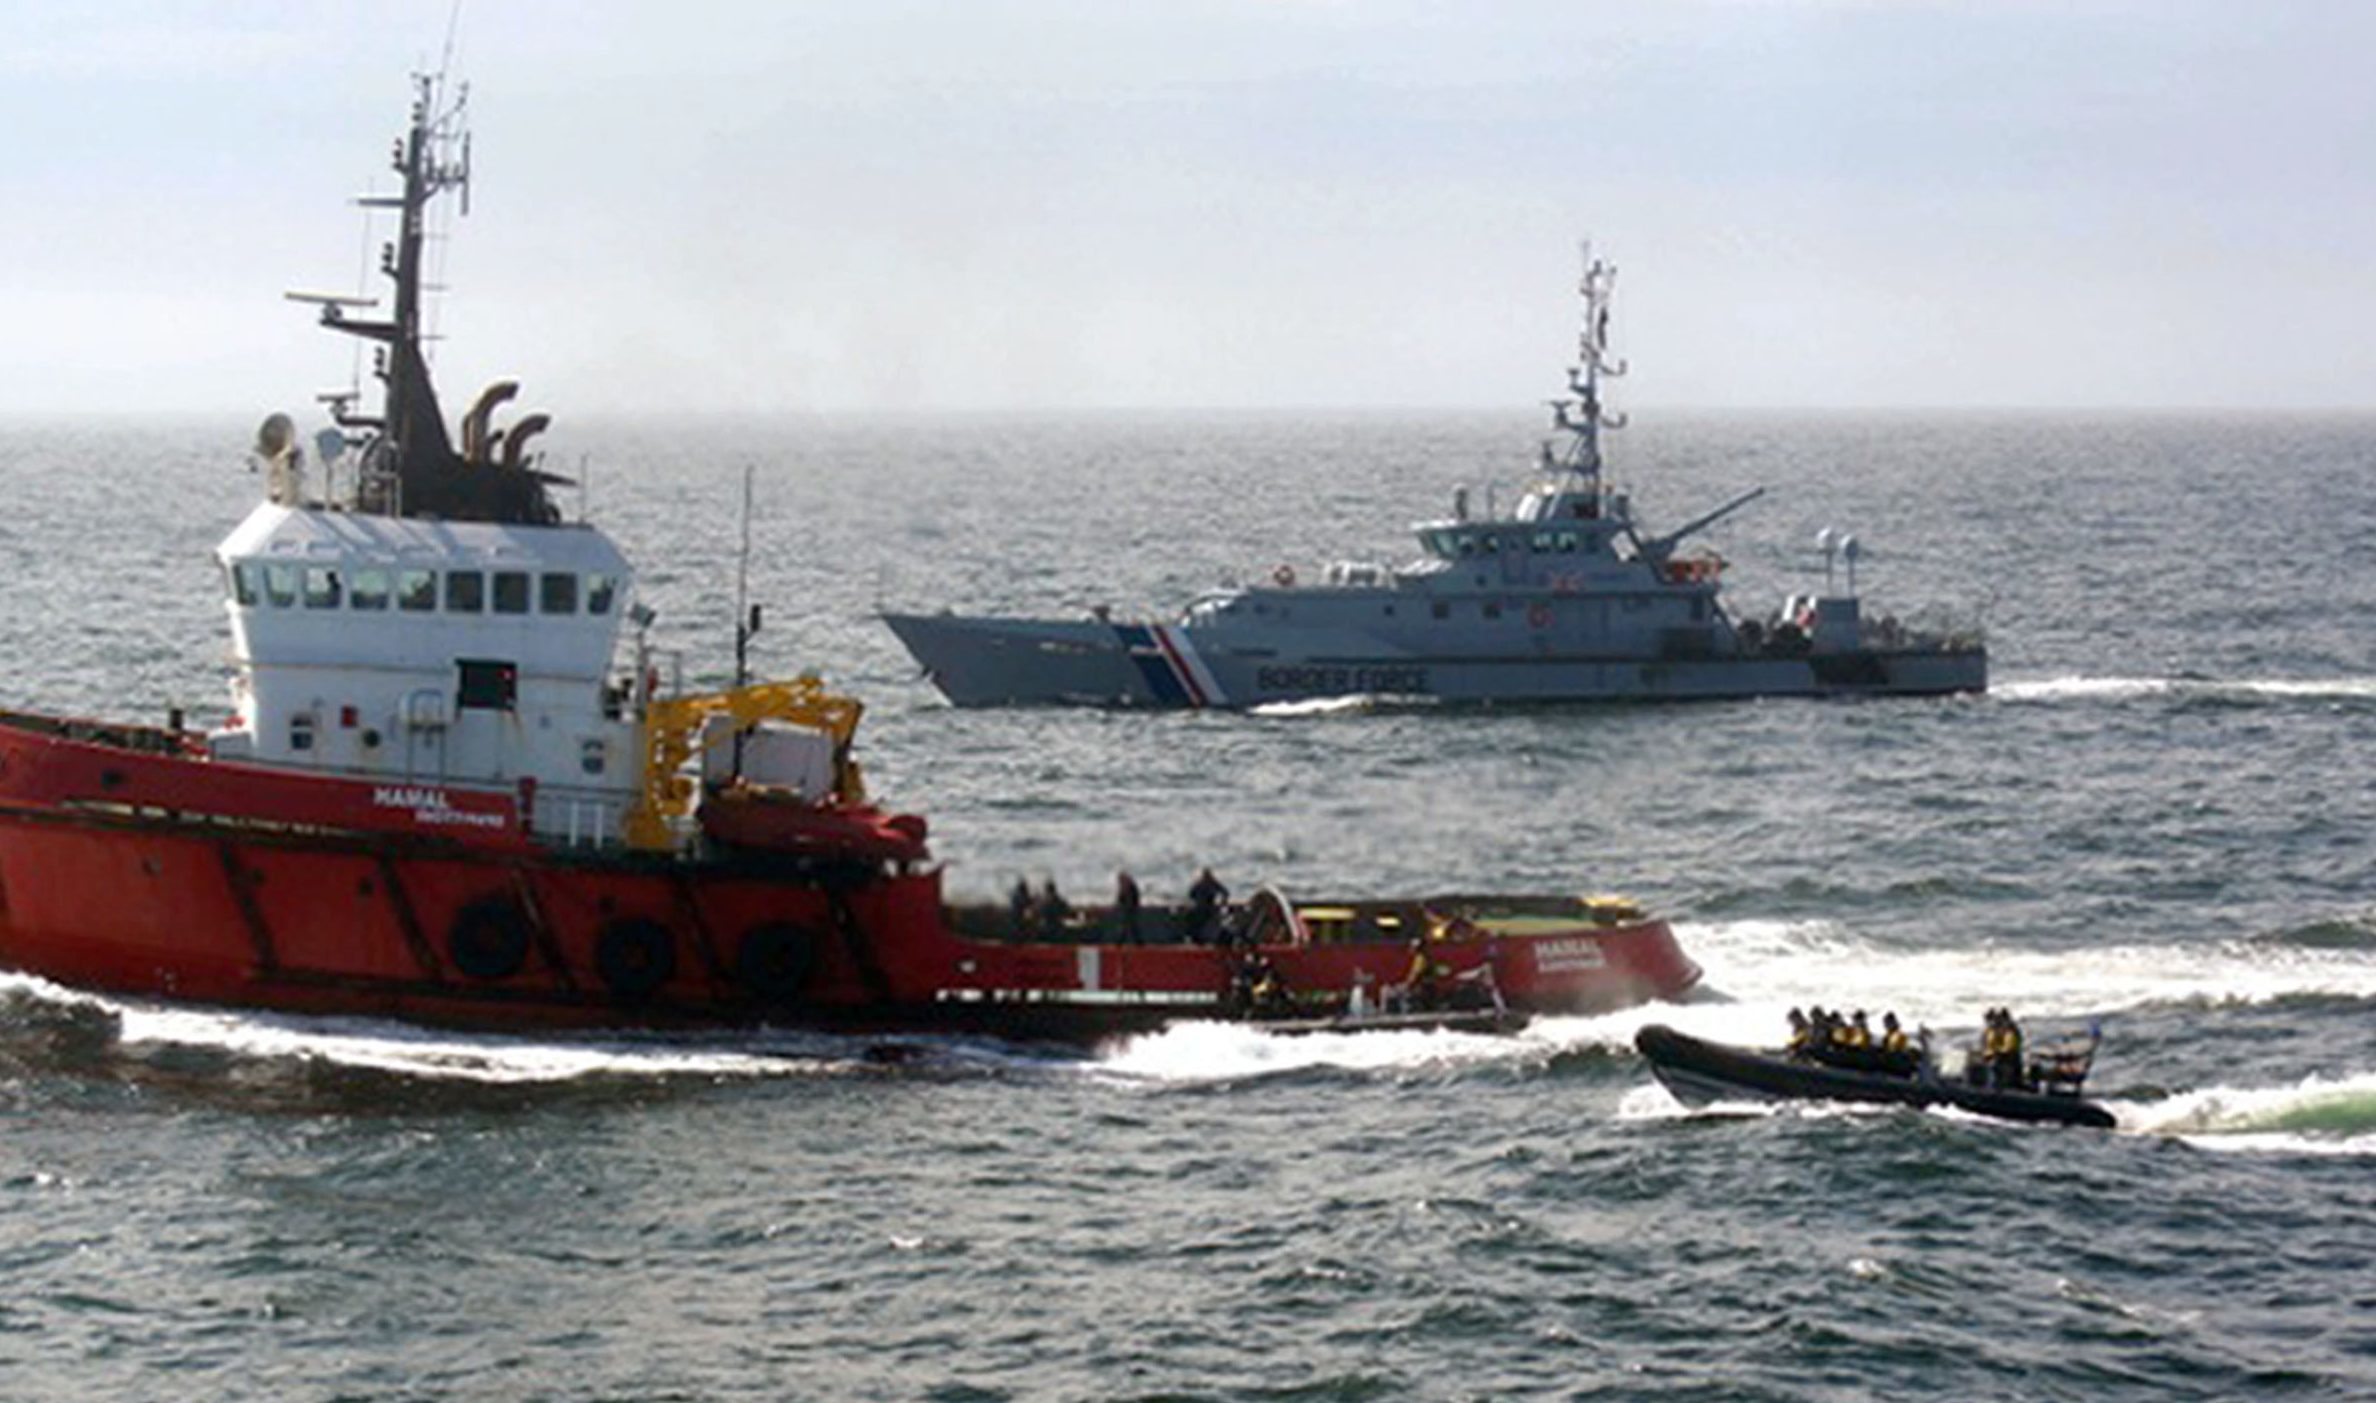 MV Hamal (left) as it was intercepted by the frigate HMS Somerset and Border Force cutter Valiant (right) about 100 miles east of the Aberdeen.